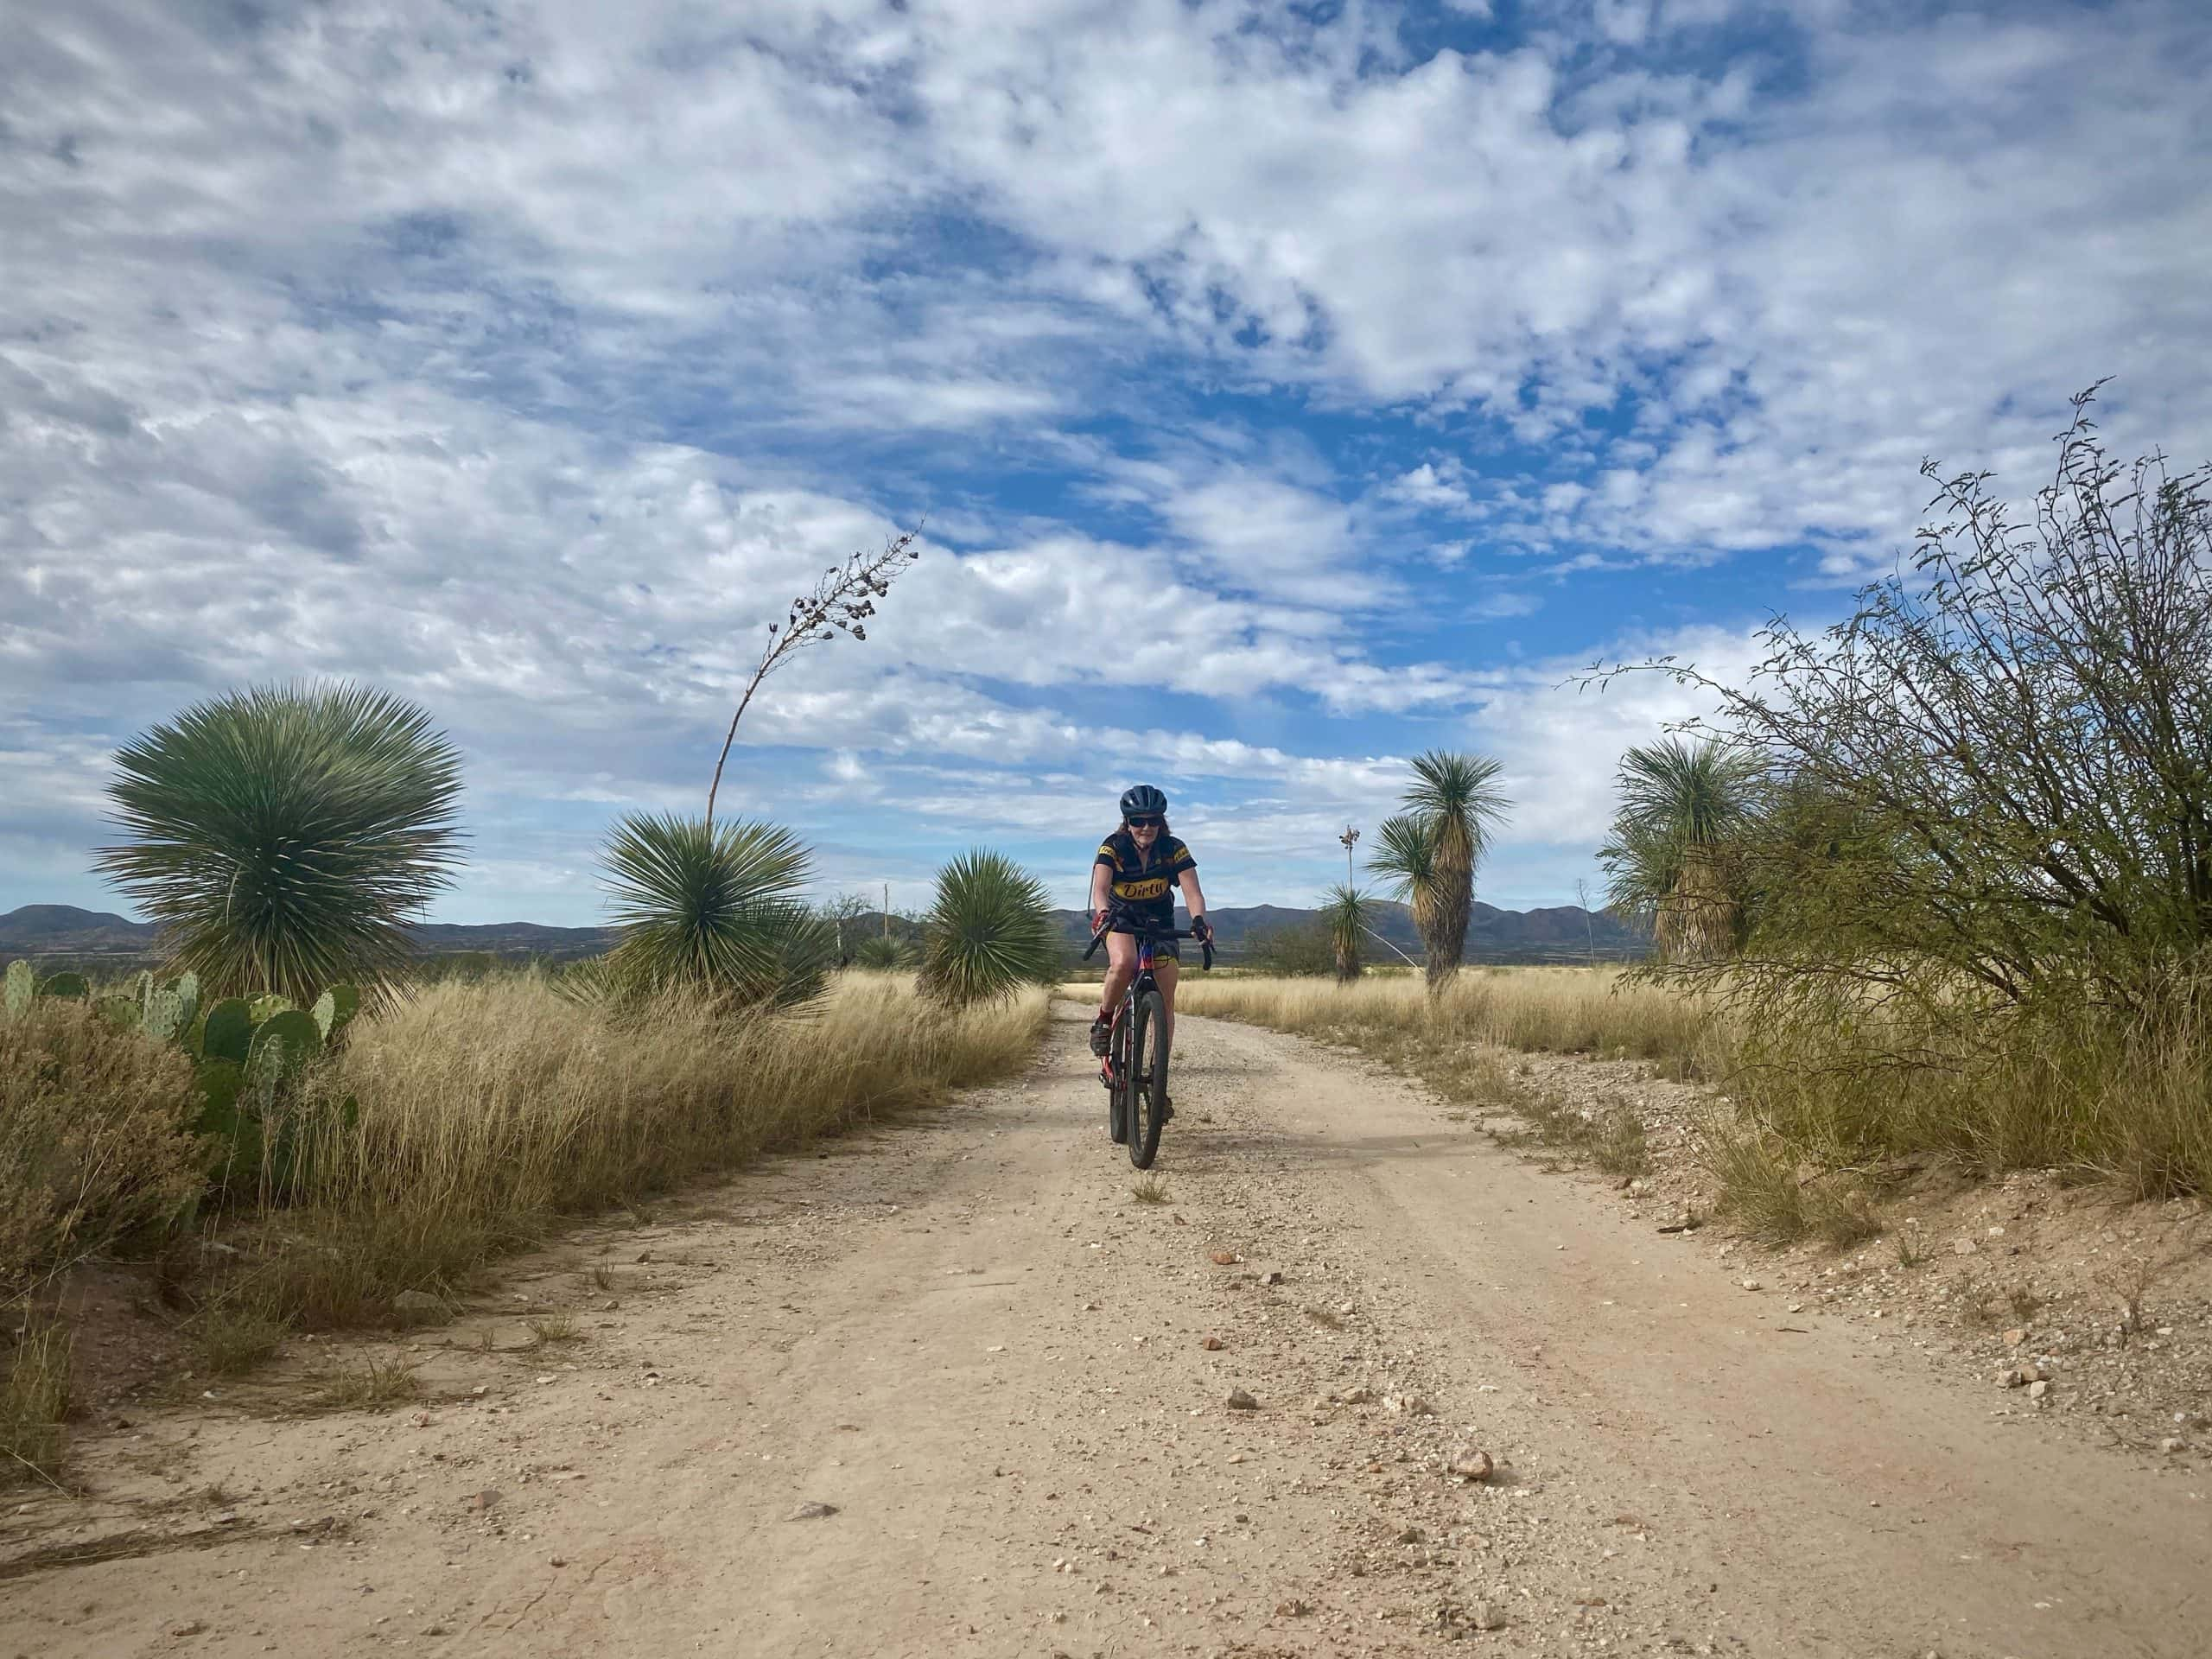 Woman gravel cyclist riding between yucca plants in Buenos Aires National Wildlife Refuge near Arivaca, Arizona.